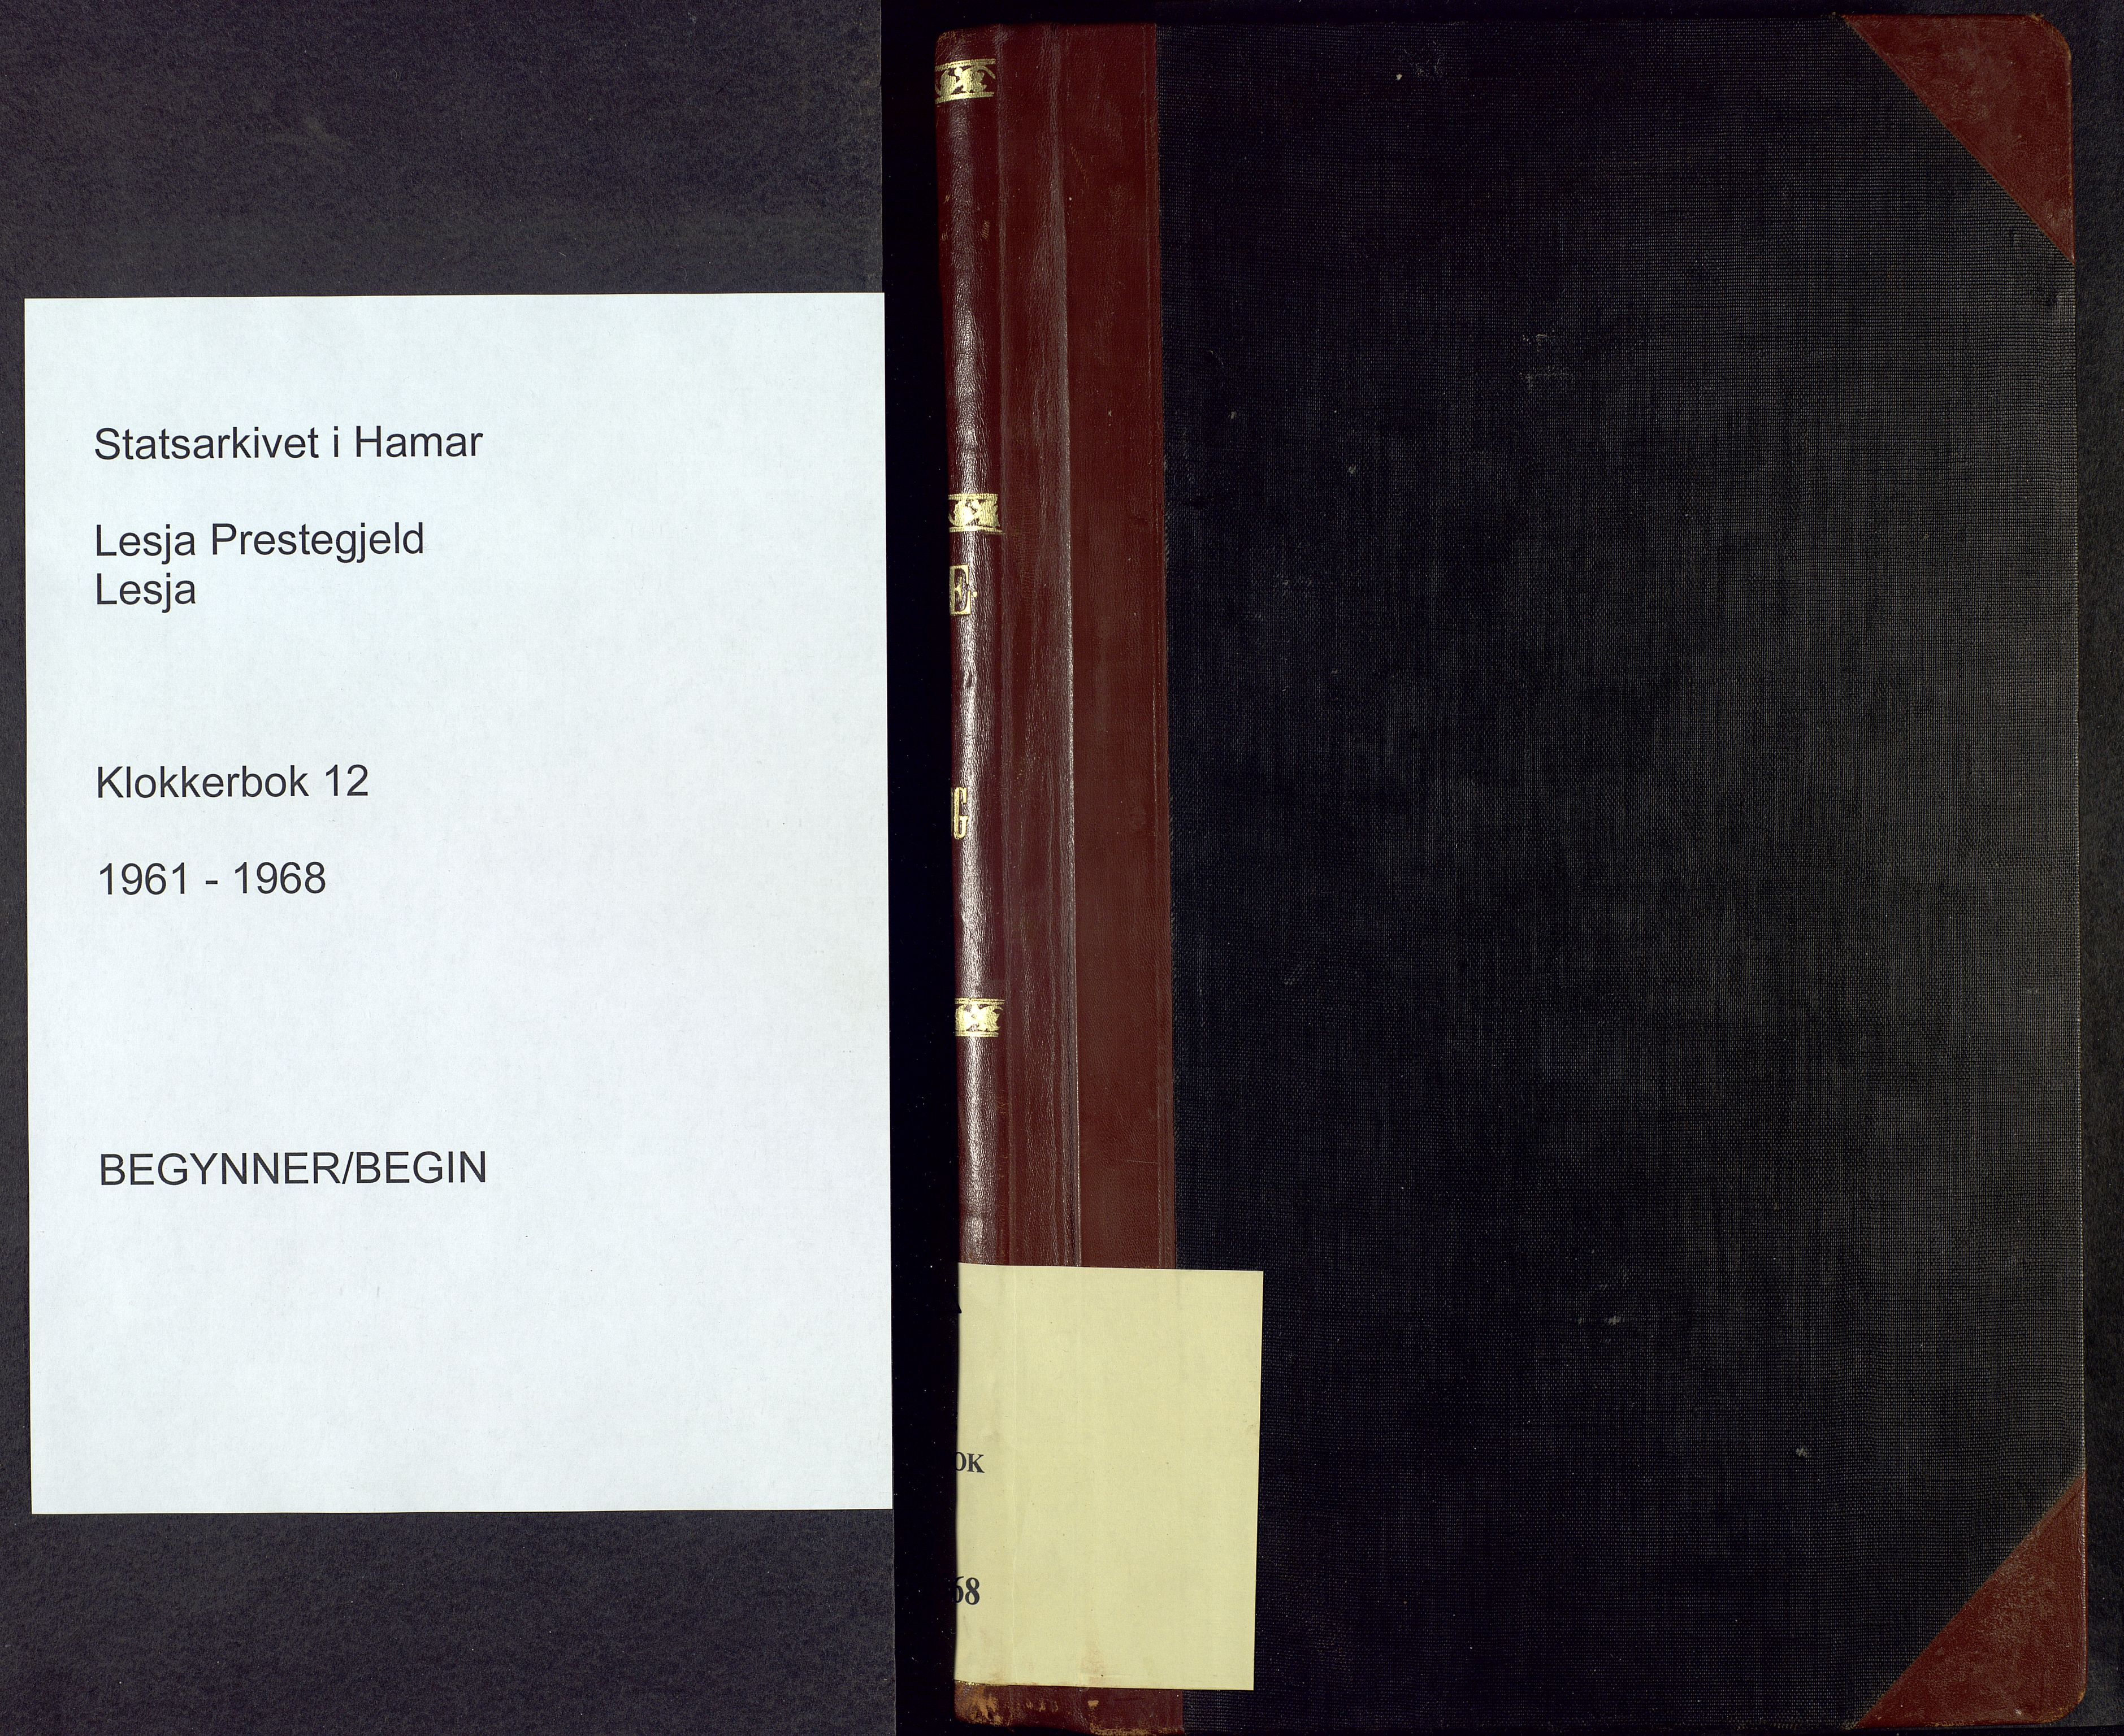 SAH, Lesja prestekontor, Parish register (copy) no. 12, 1961-1968